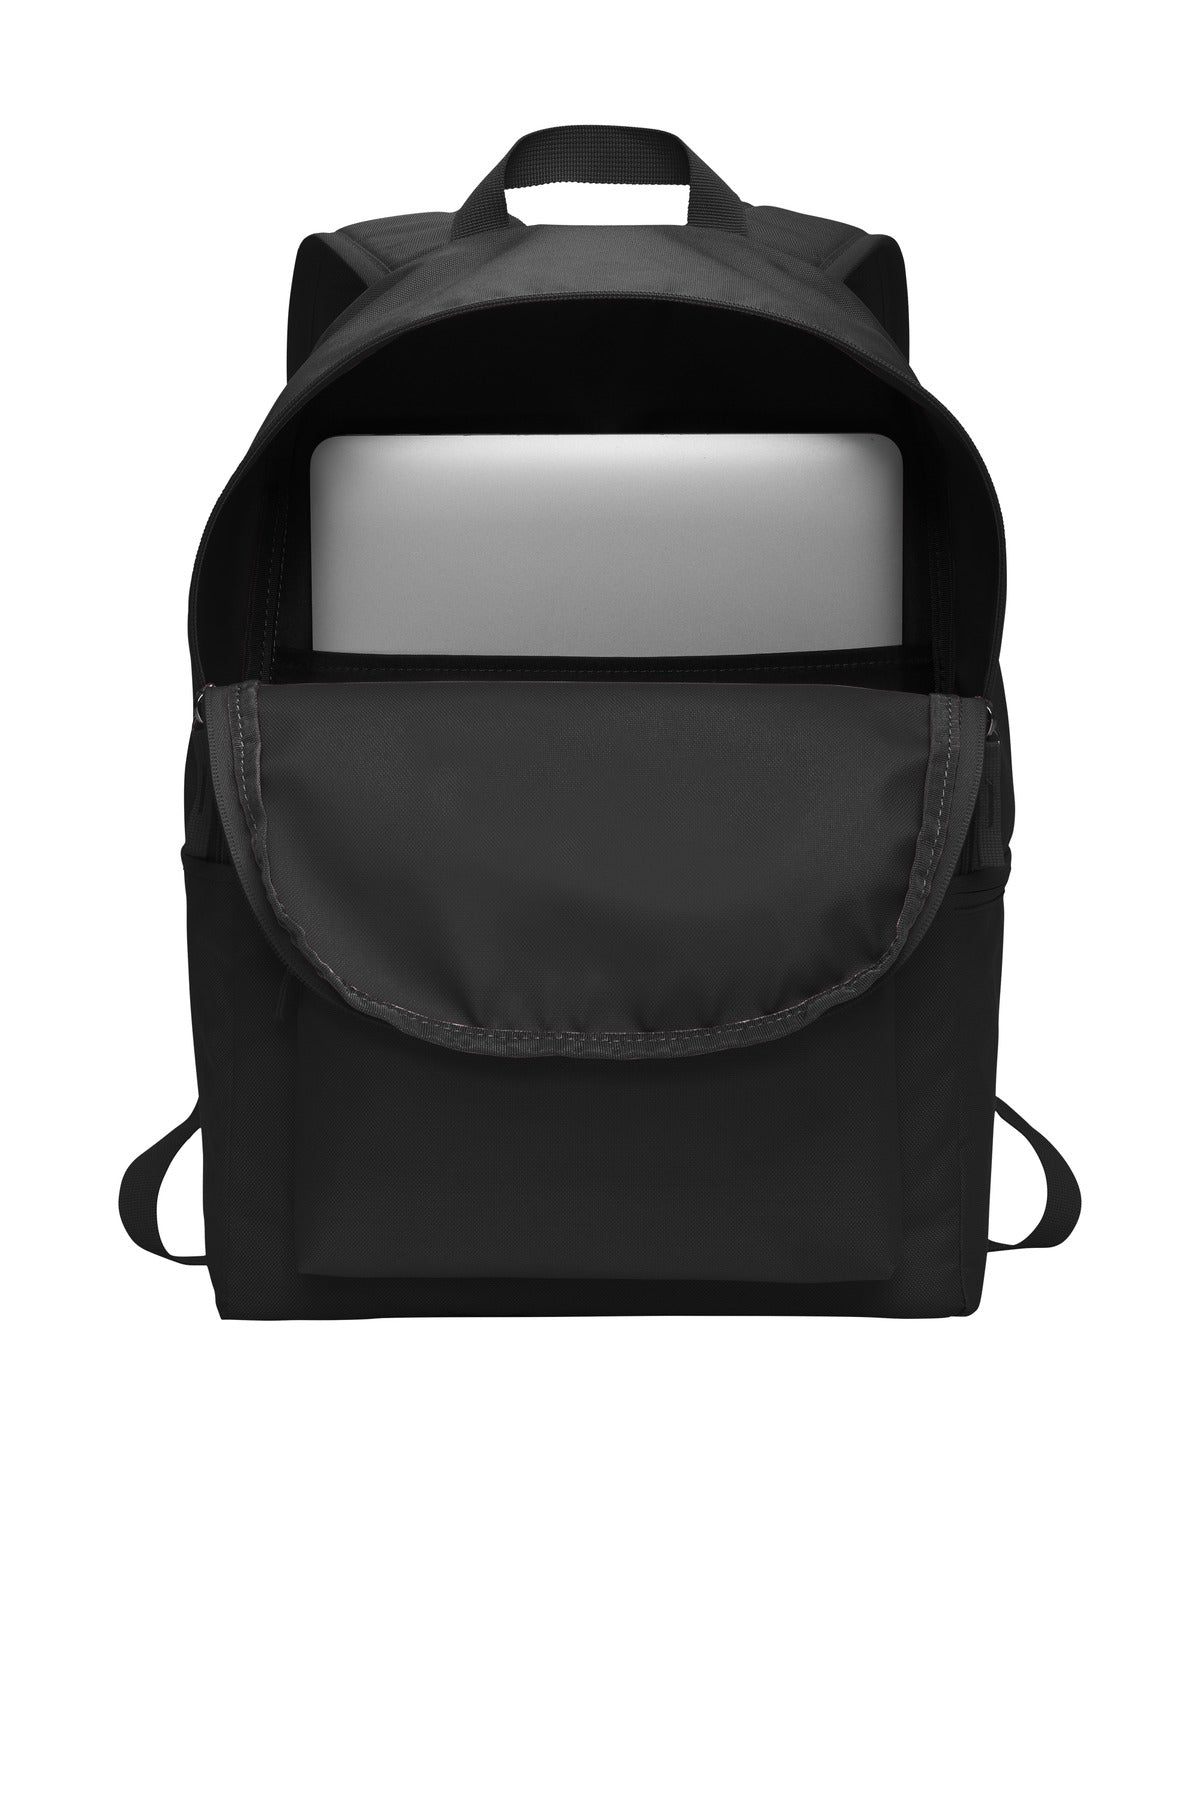 Nike Heritage 2.0 Backpack BA5879